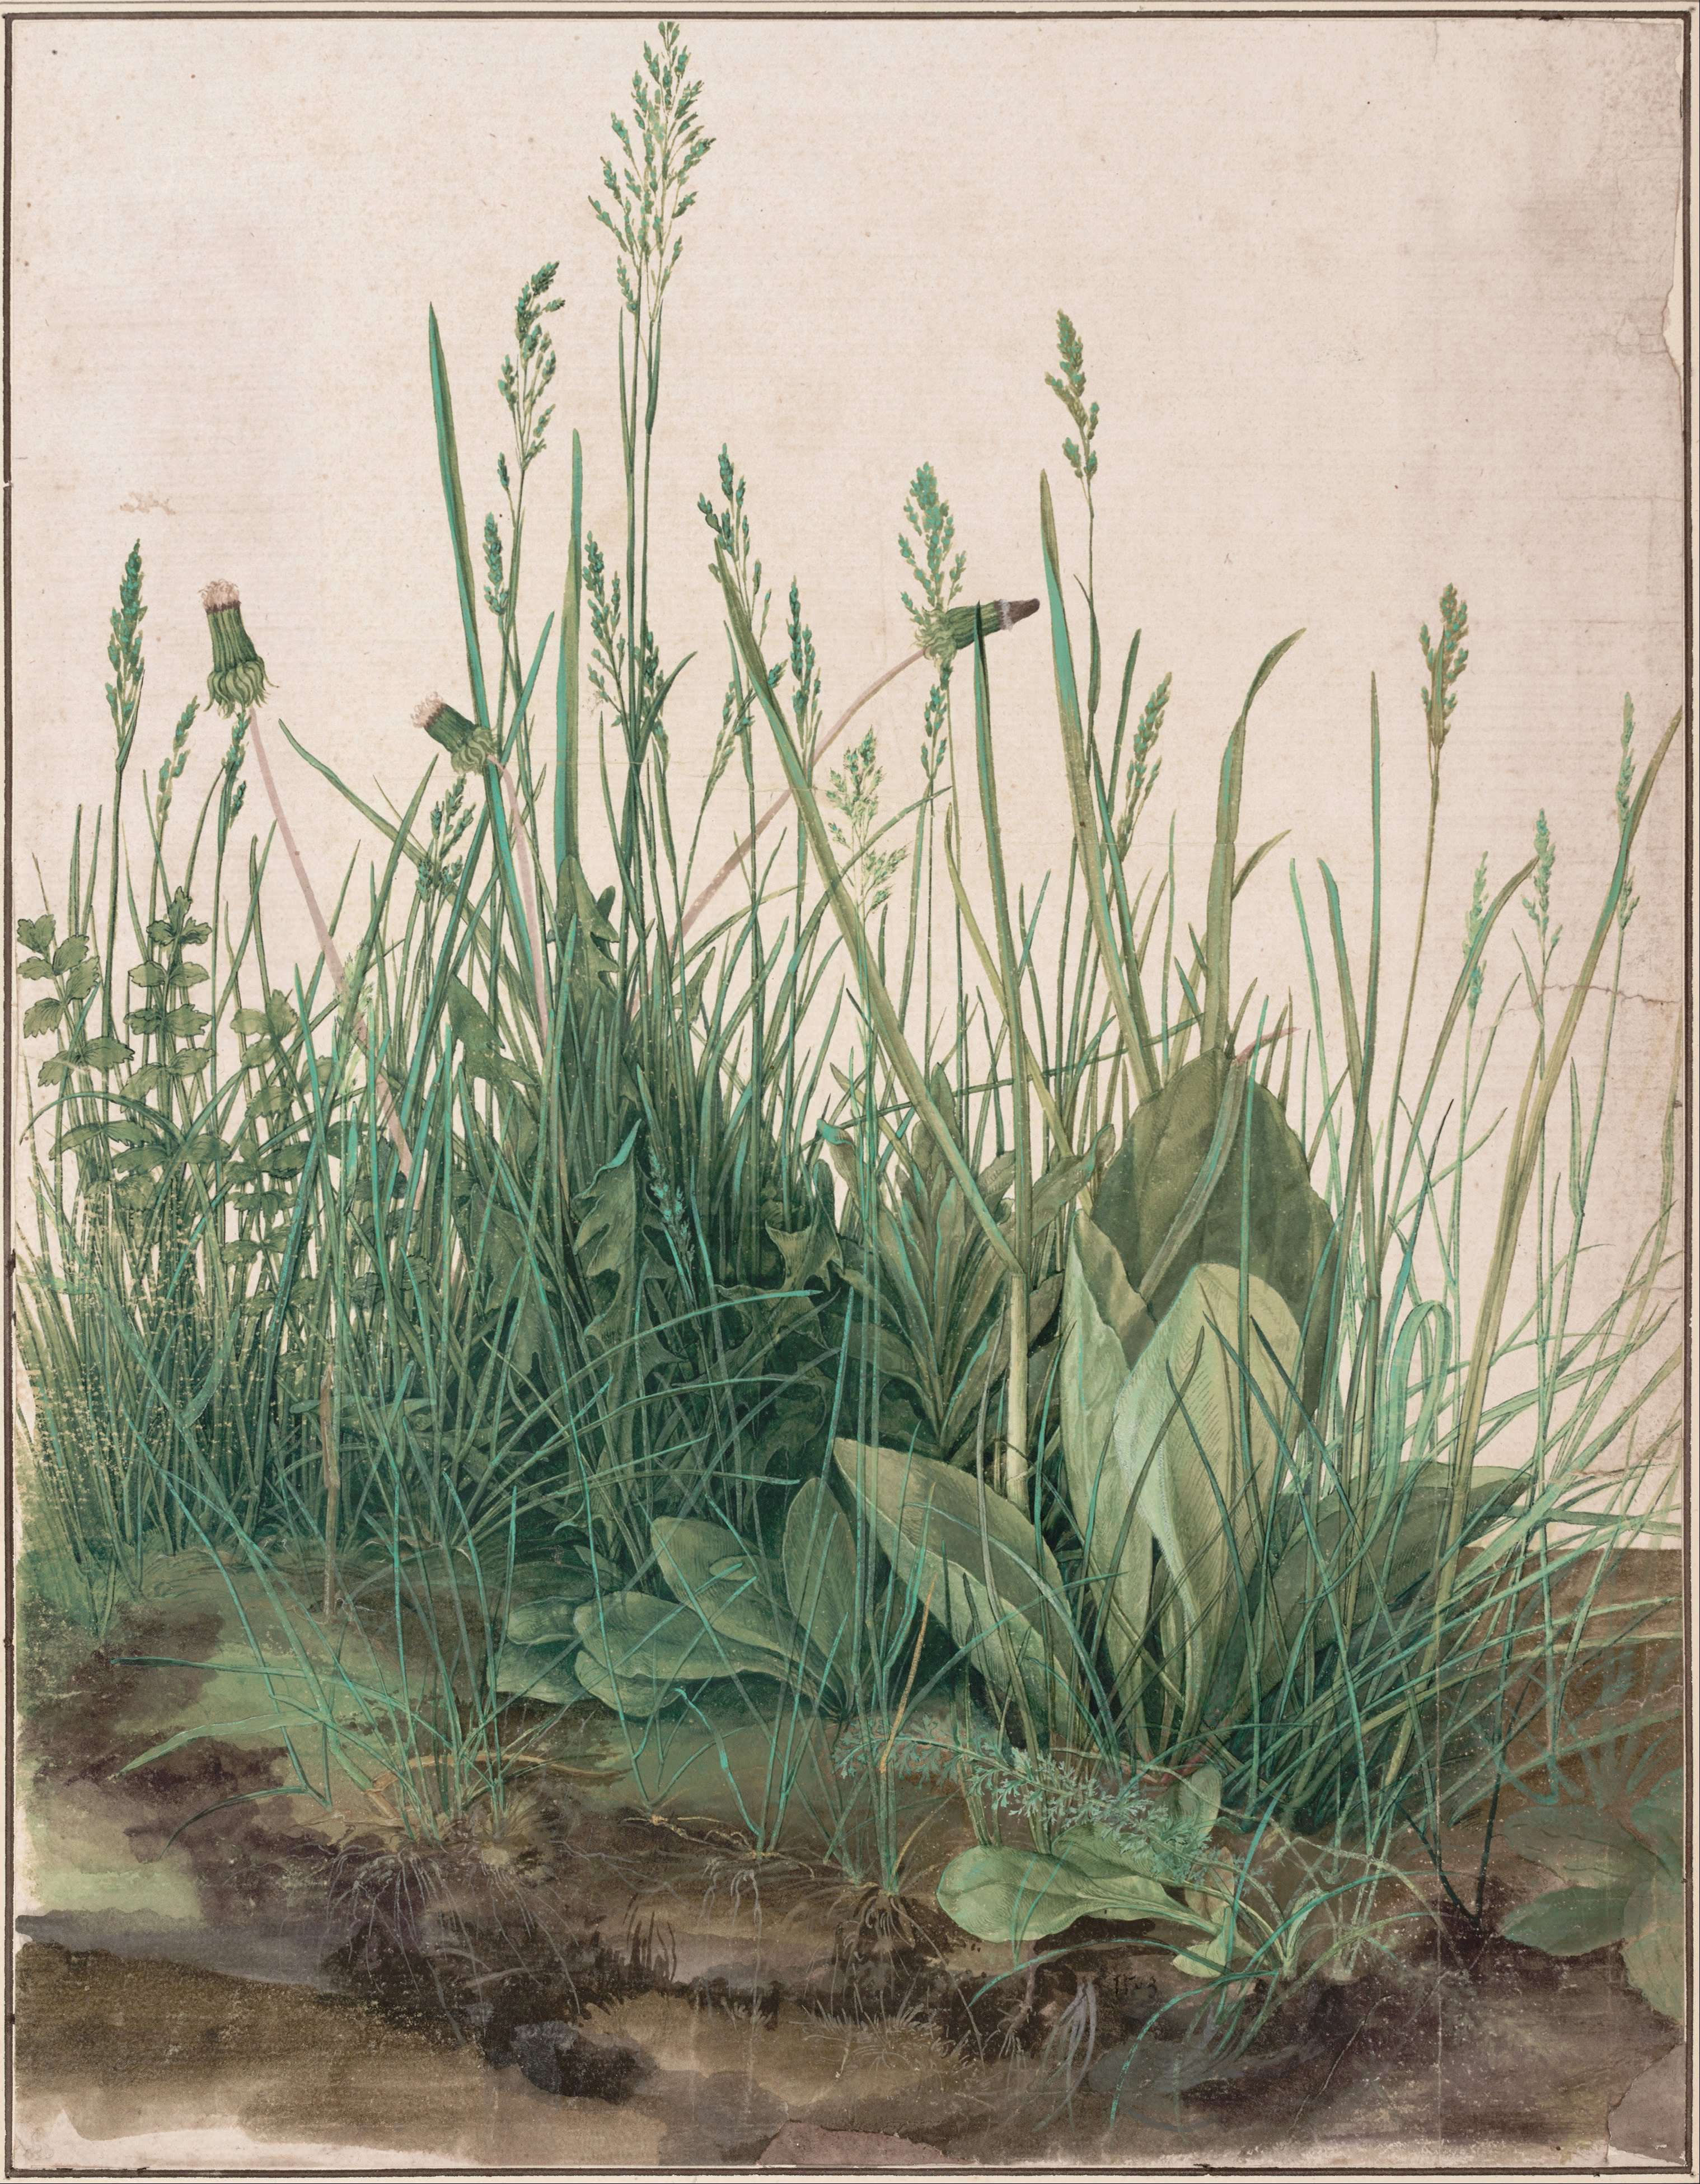 http://upload.wikimedia.org/wikipedia/commons/f/f6/Albrecht_D%C3%BCrer_-_The_Large_Piece_of_Turf%2C_1503_-_Google_Art_Project.jpg